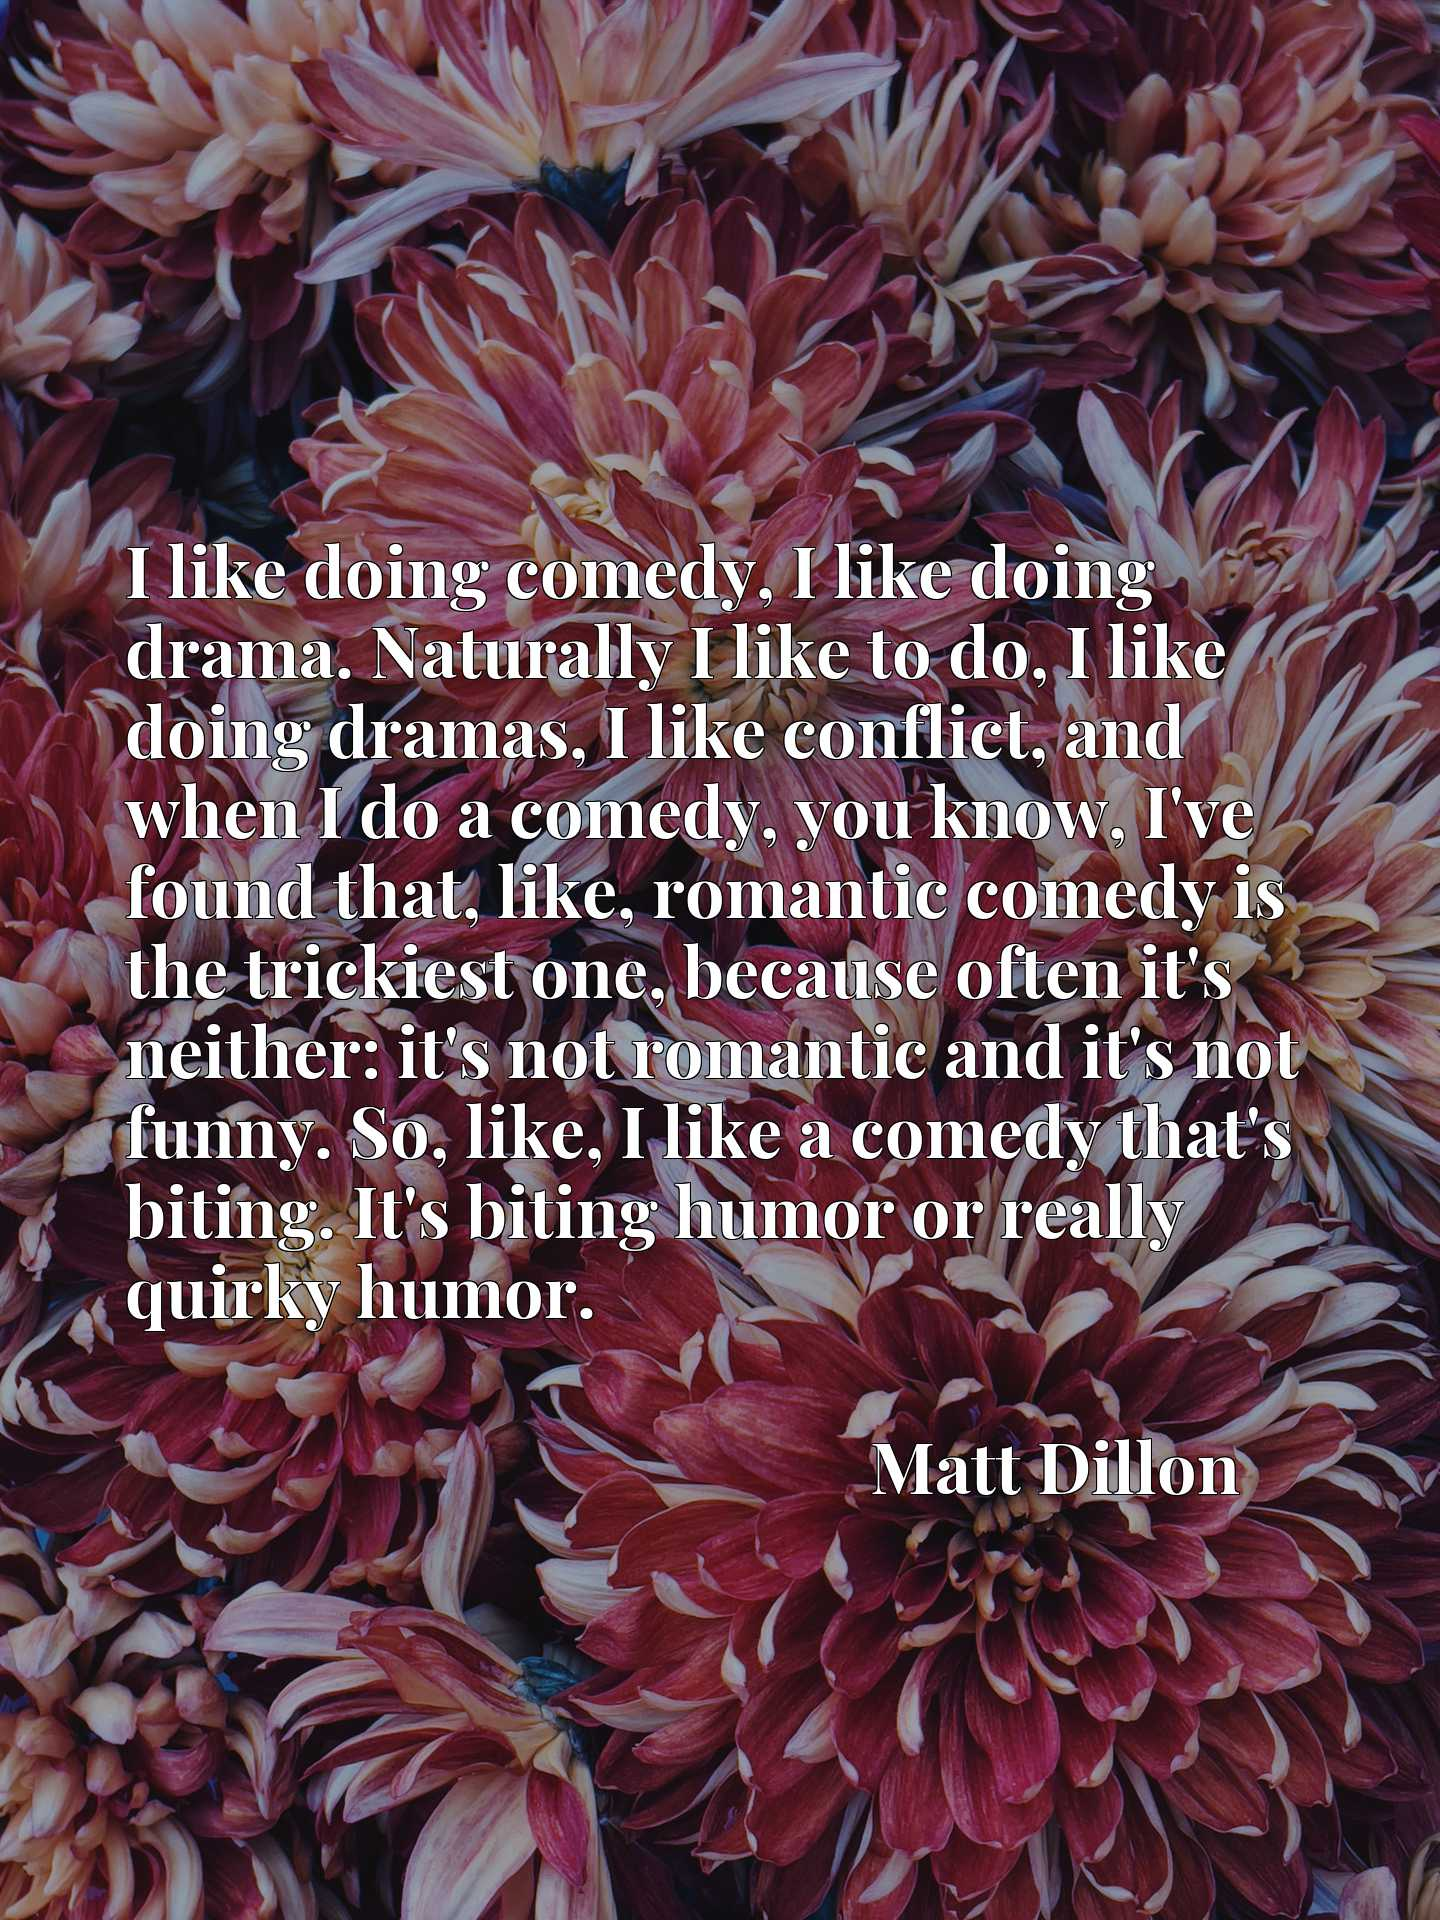 I like doing comedy, I like doing drama. Naturally I like to do, I like doing dramas, I like conflict, and when I do a comedy, you know, I've found that, like, romantic comedy is the trickiest one, because often it's neither: it's not romantic and it's not funny. So, like, I like a comedy that's biting. It's biting humor or really quirky humor.